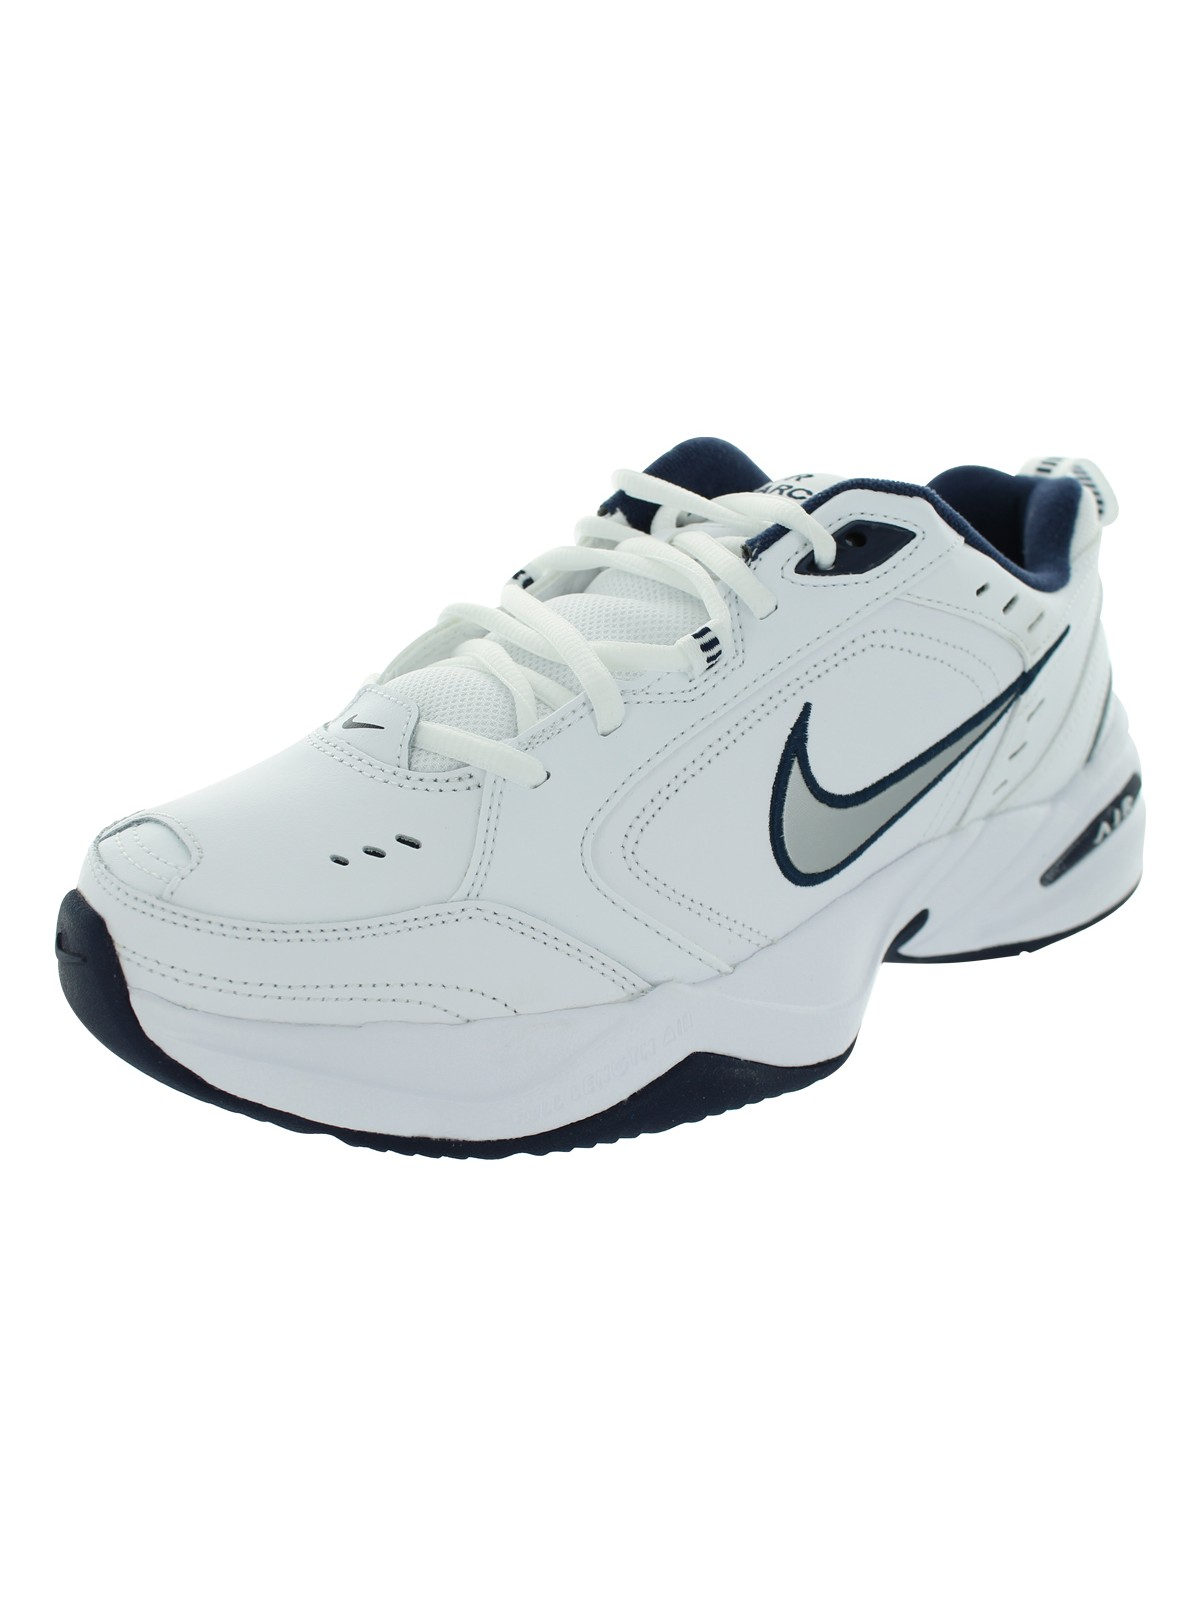 3da1d3a520f85f Nike Air Monarch IV Training Shoes